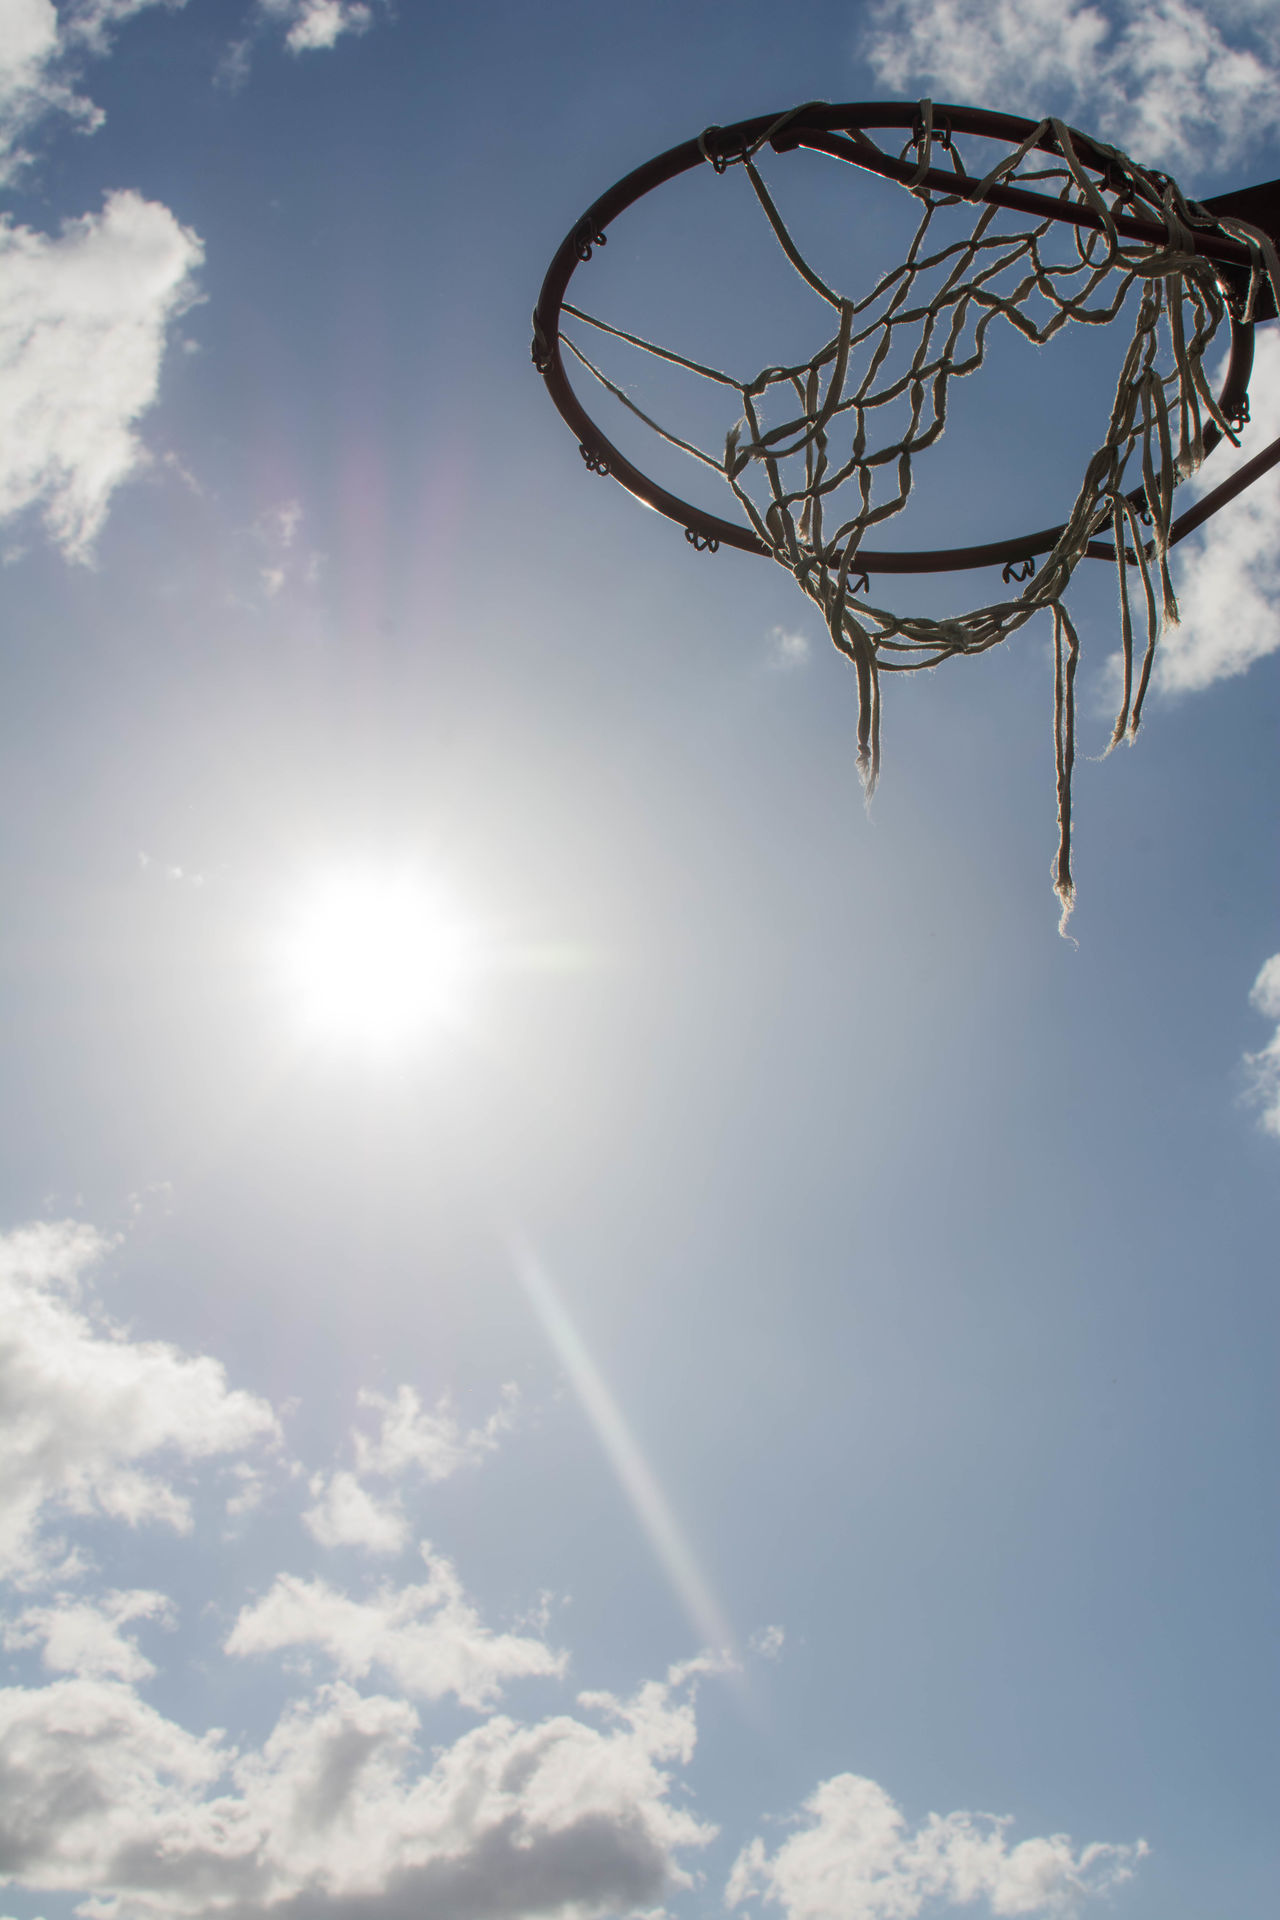 """from downtown ! "" Basket Basketball Basketballkorb Daylight Eye4photography  EyeEm Best Shots Himmel Und Wolken Light And Shadow No People Open Edit Park Fiction Silhouette Sky Sky And Clouds Sonne Sonnenschein  Straßenfotografie Streetball Streetphotography Sun Sunshine Taking Photos Urban Urban Nature Urbanphotography"